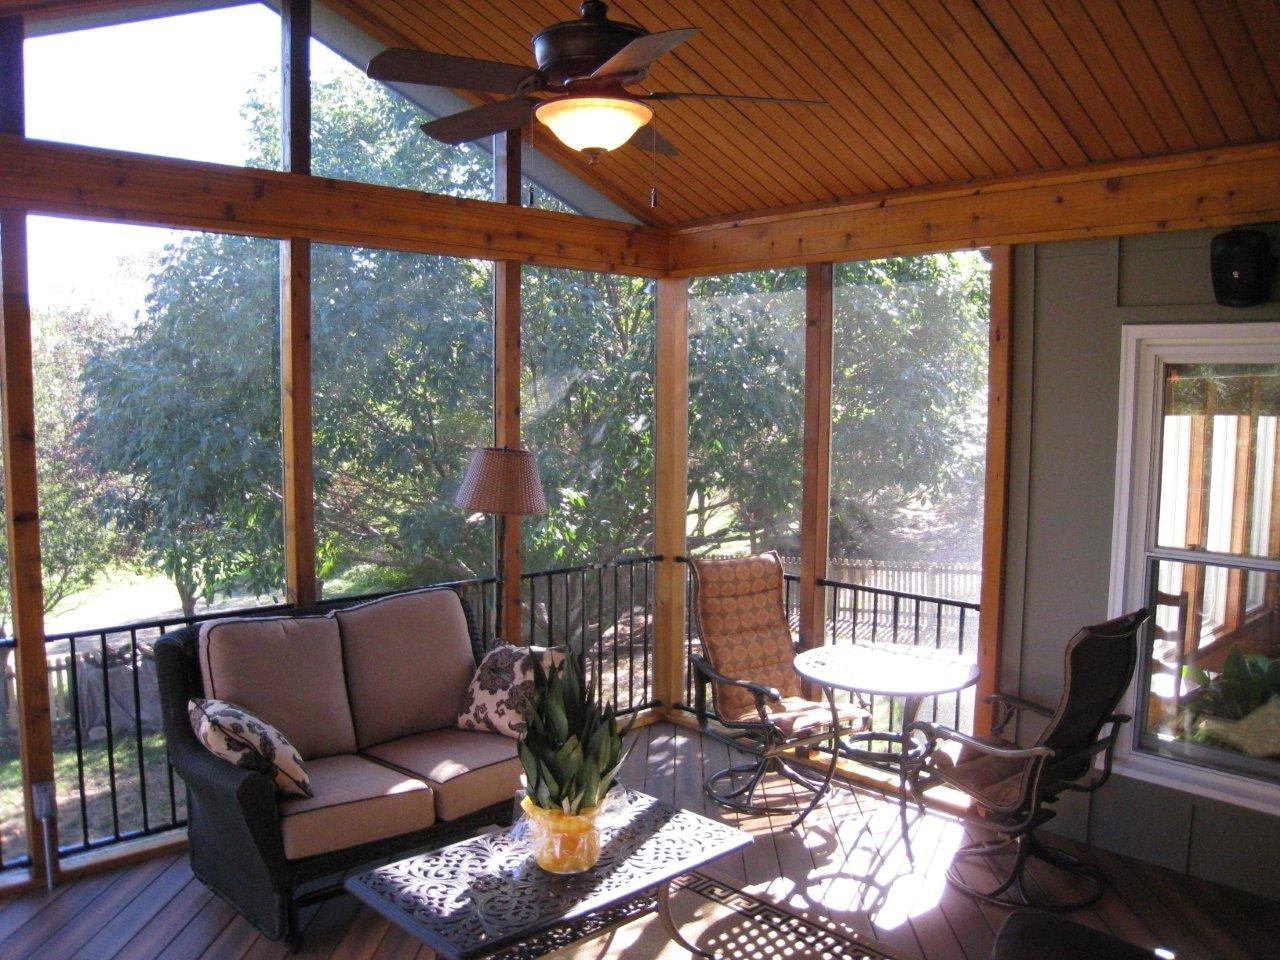 Outdoor Ceiling Fans For Porch Within Newest Low Profile Outdoor Ceiling Fans With Light In Farmhouse With (View 13 of 20)